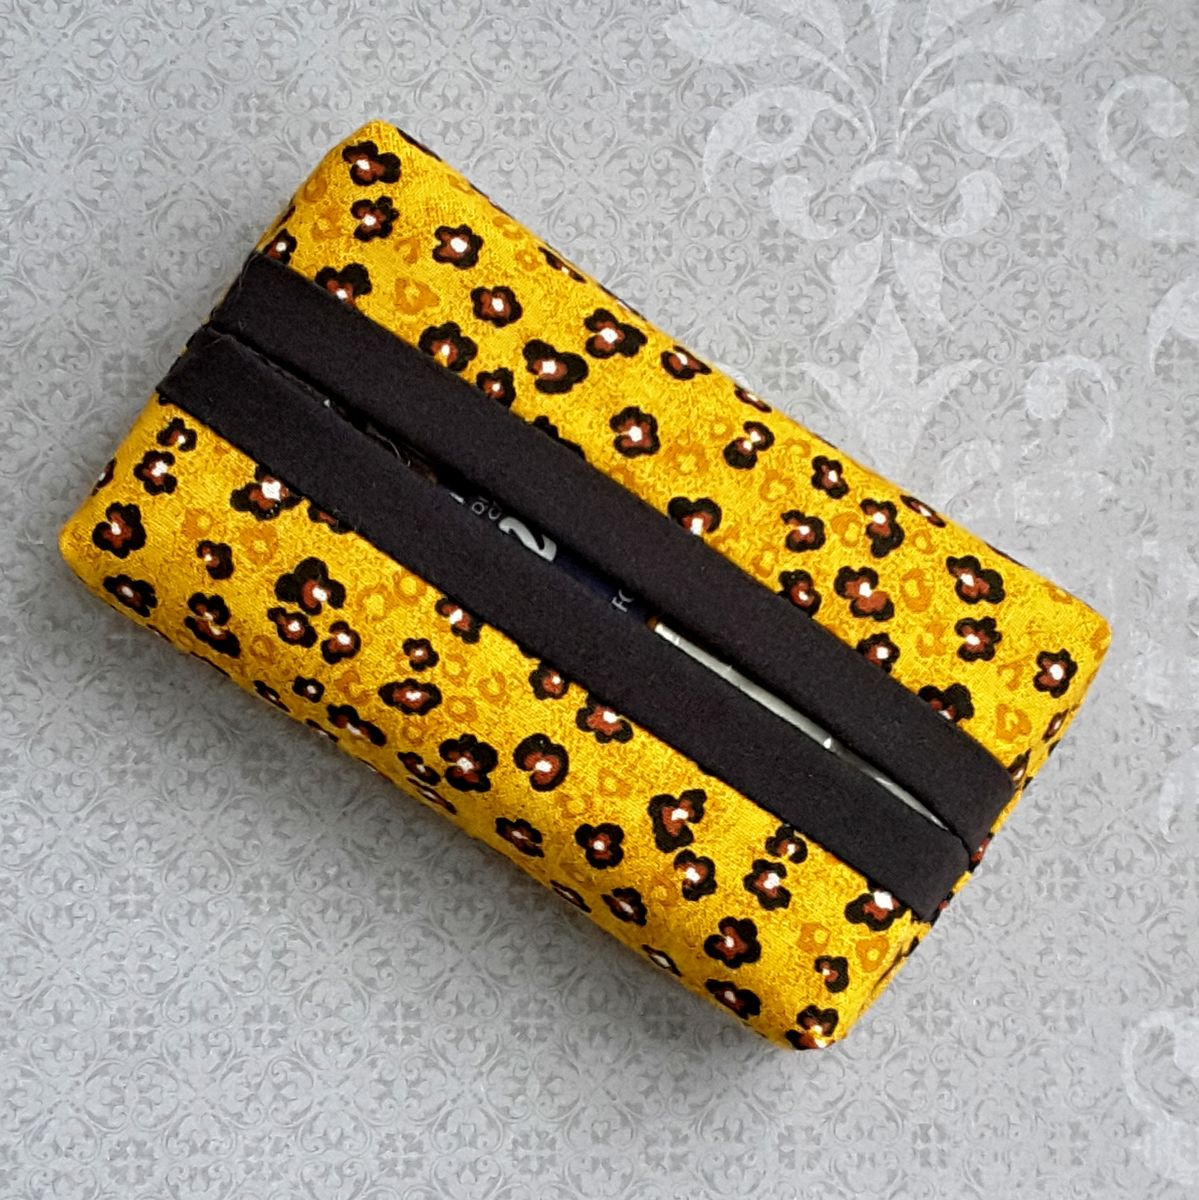 Spotty Leopard Boxy Pocket Purse Tissue Case. Ecofriendly. Travel Tissue Cozy. Fits Purse Pack.  - product images  of